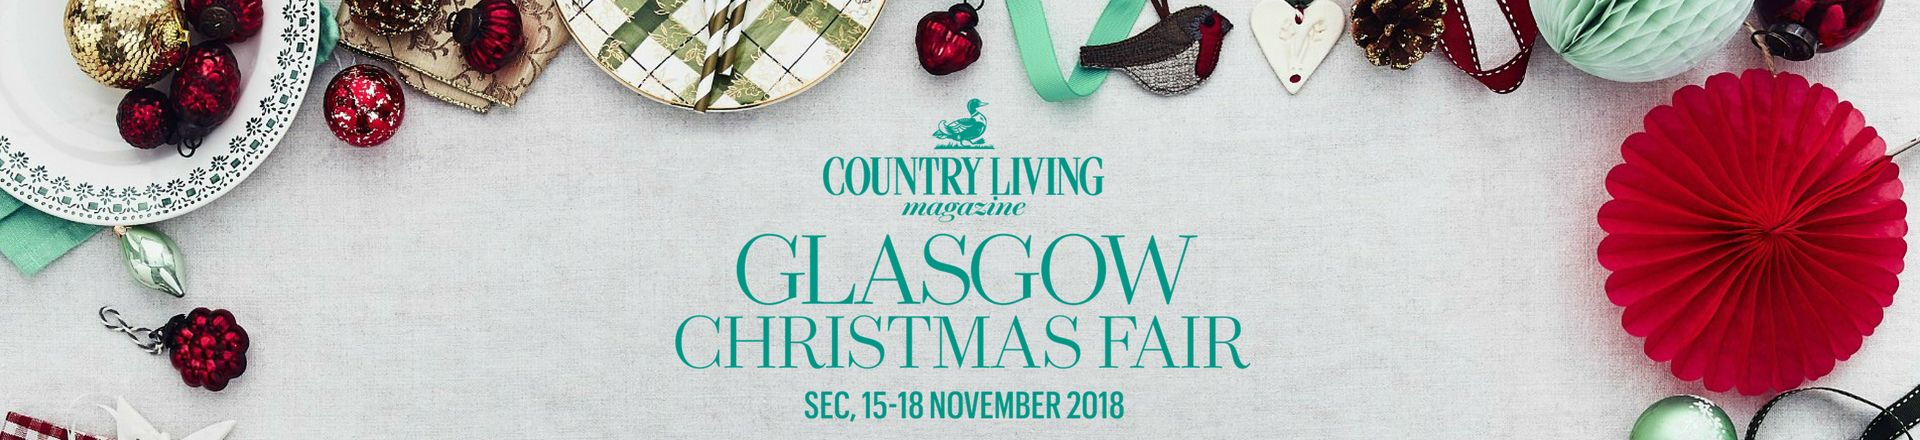 Glasgow Christmas Fair